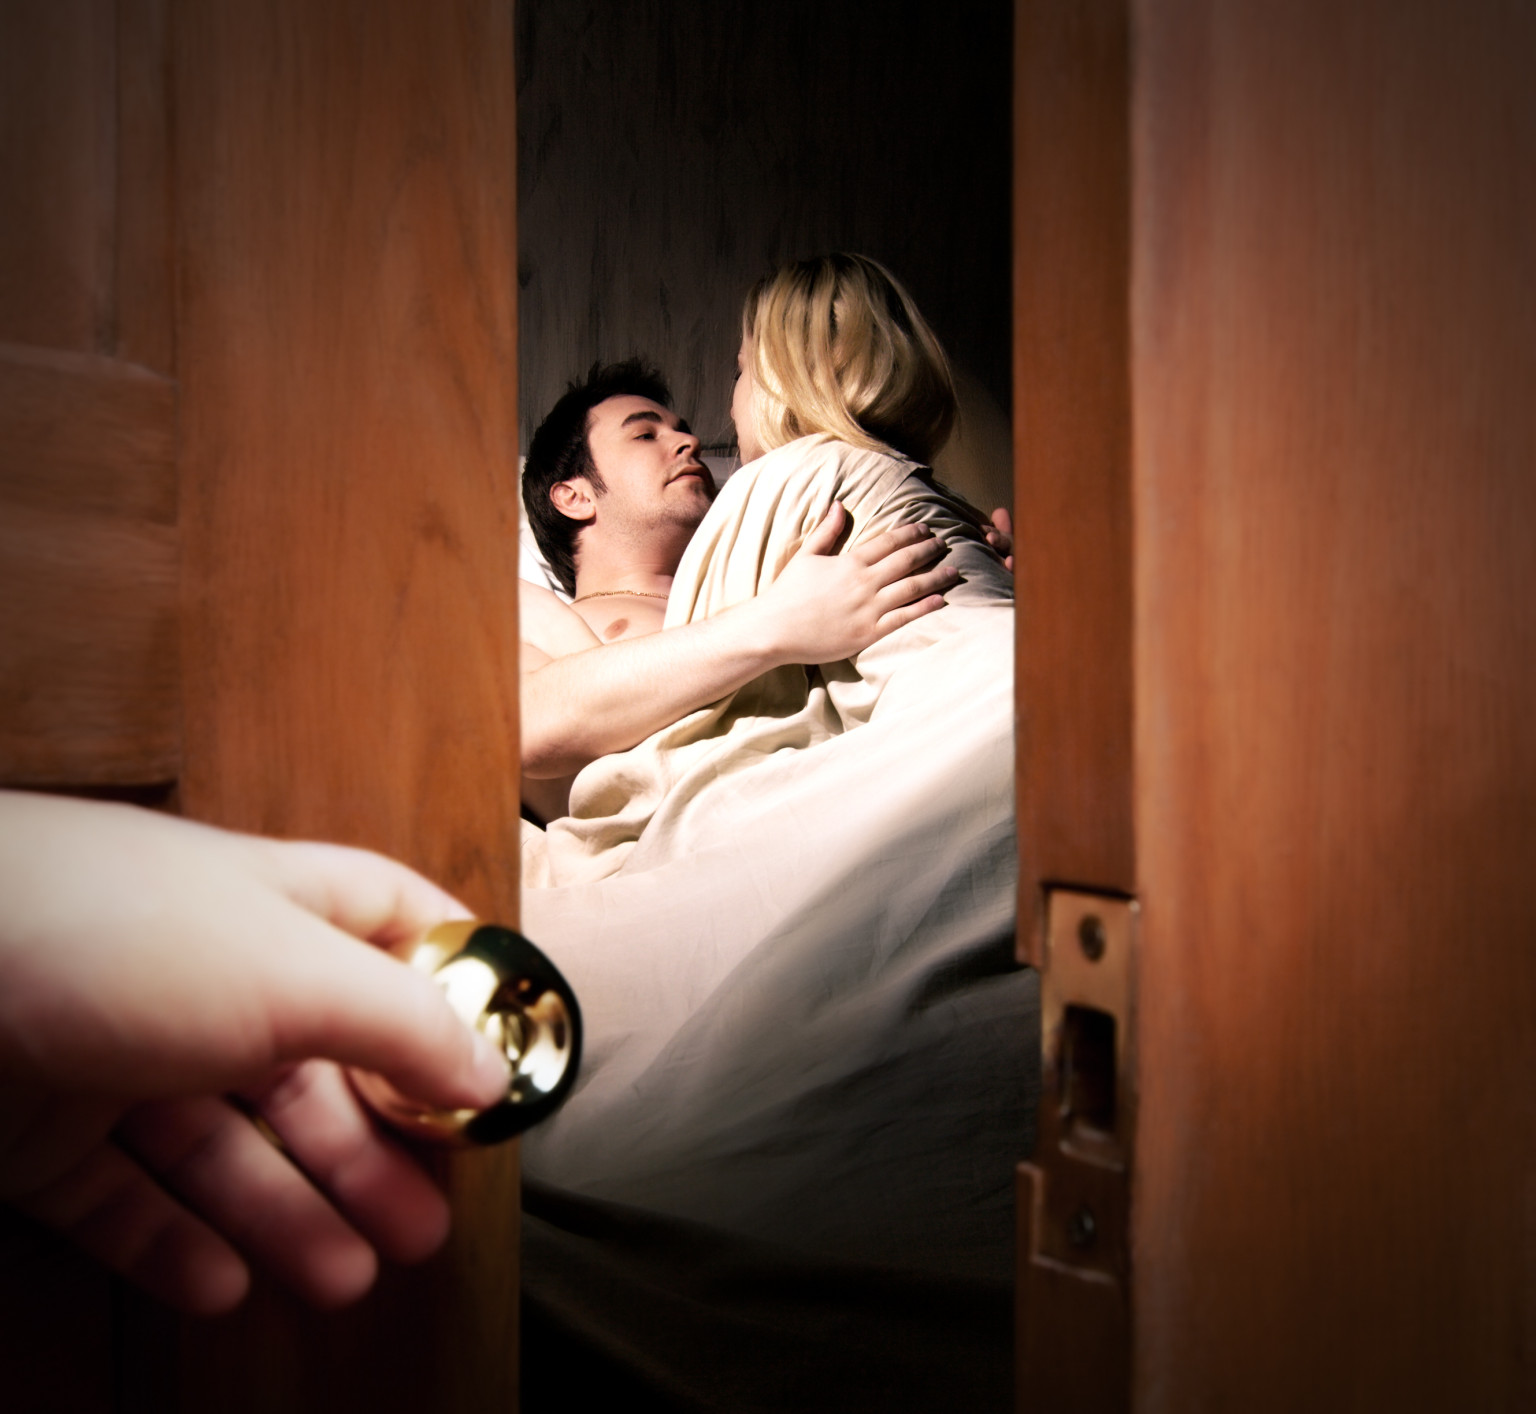 Cheating Signs: 10 Classic Signs Your Spouse May Be ...